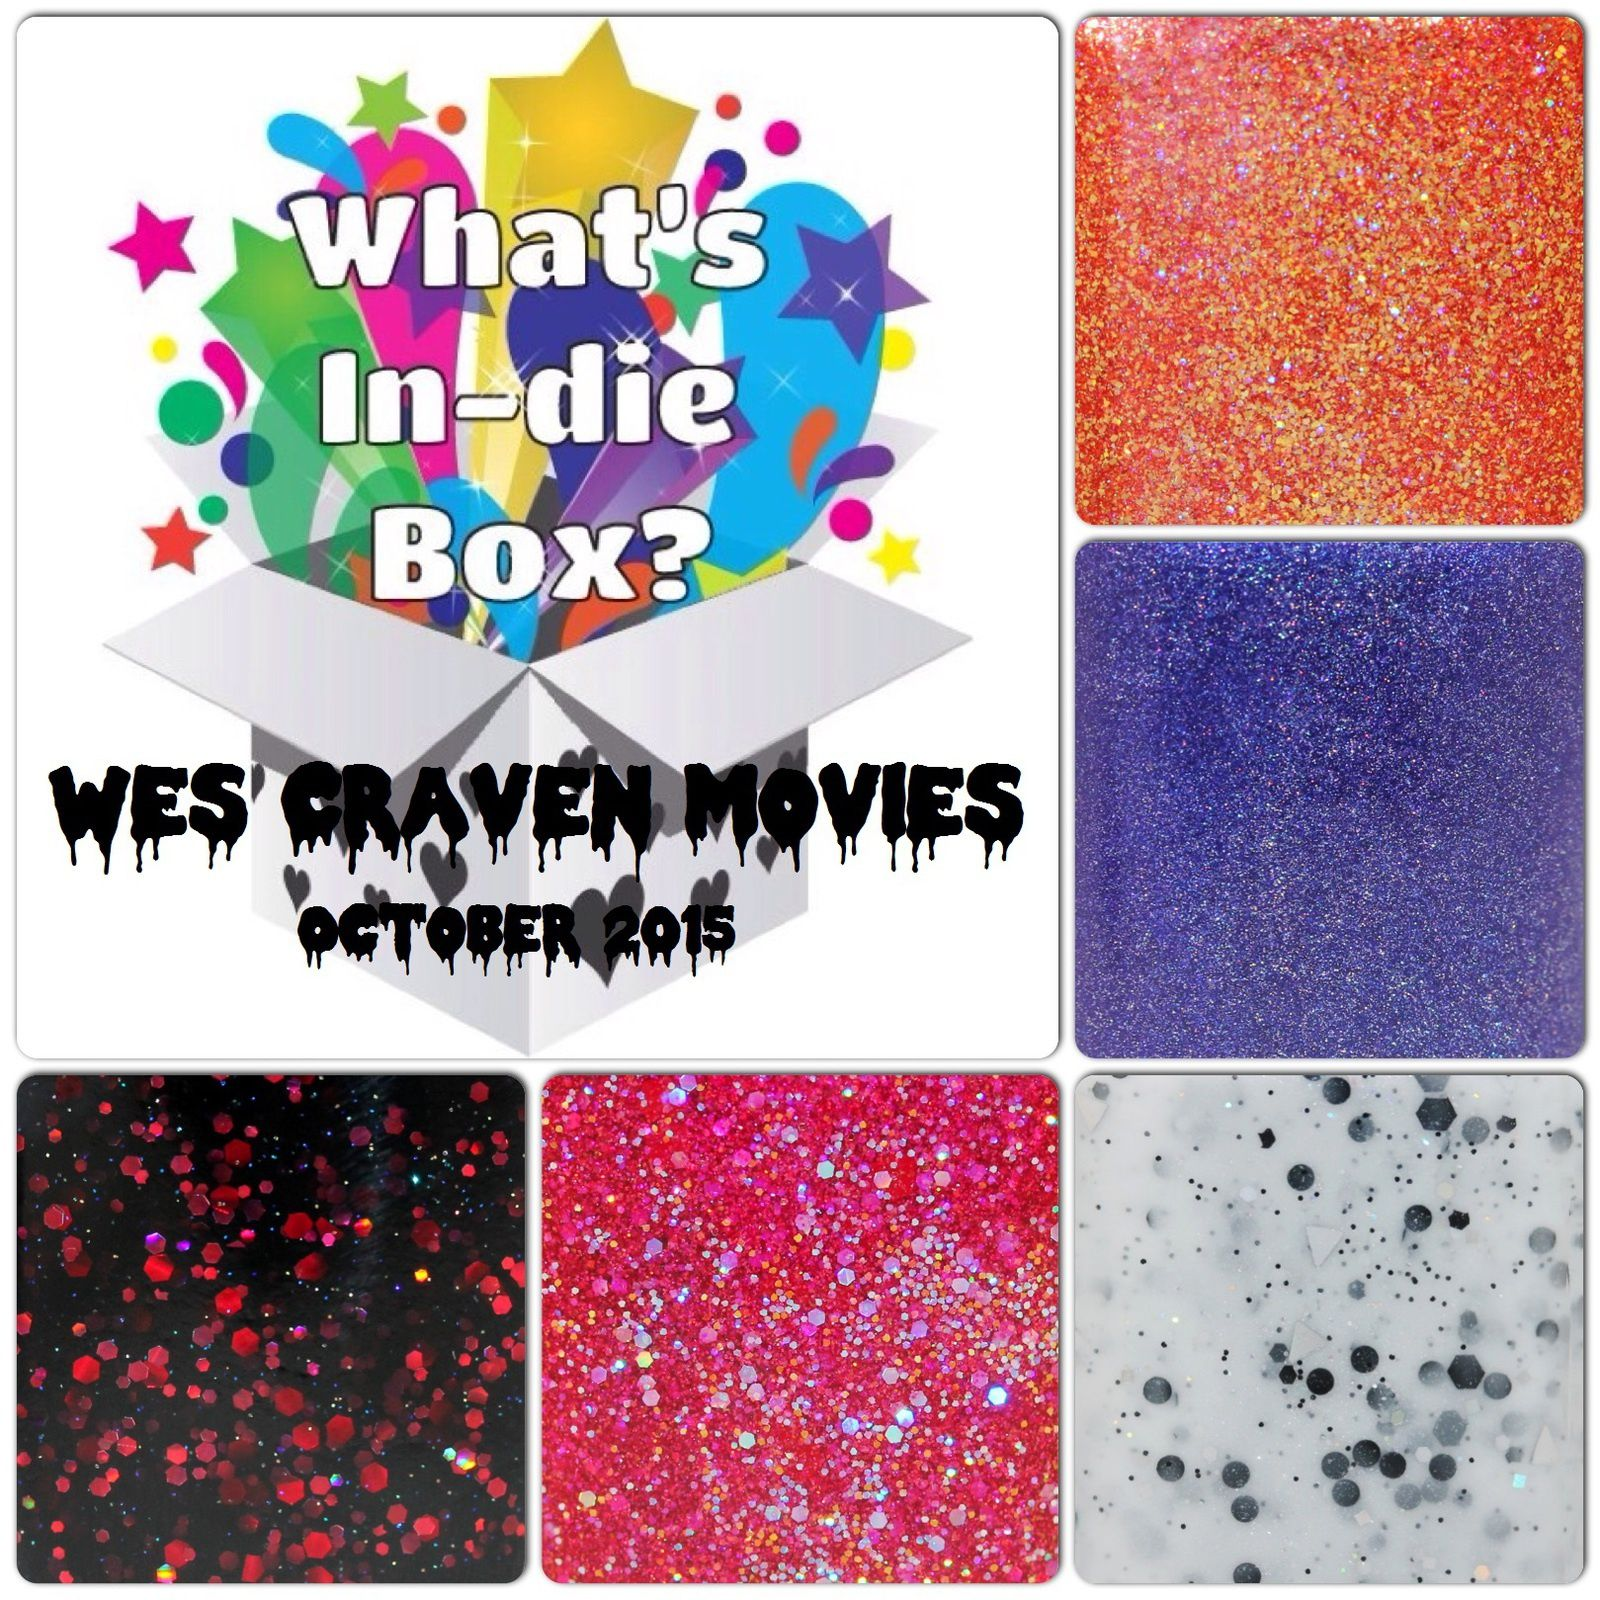 What's Indie Box - October 2015 - Wes Craven Movies